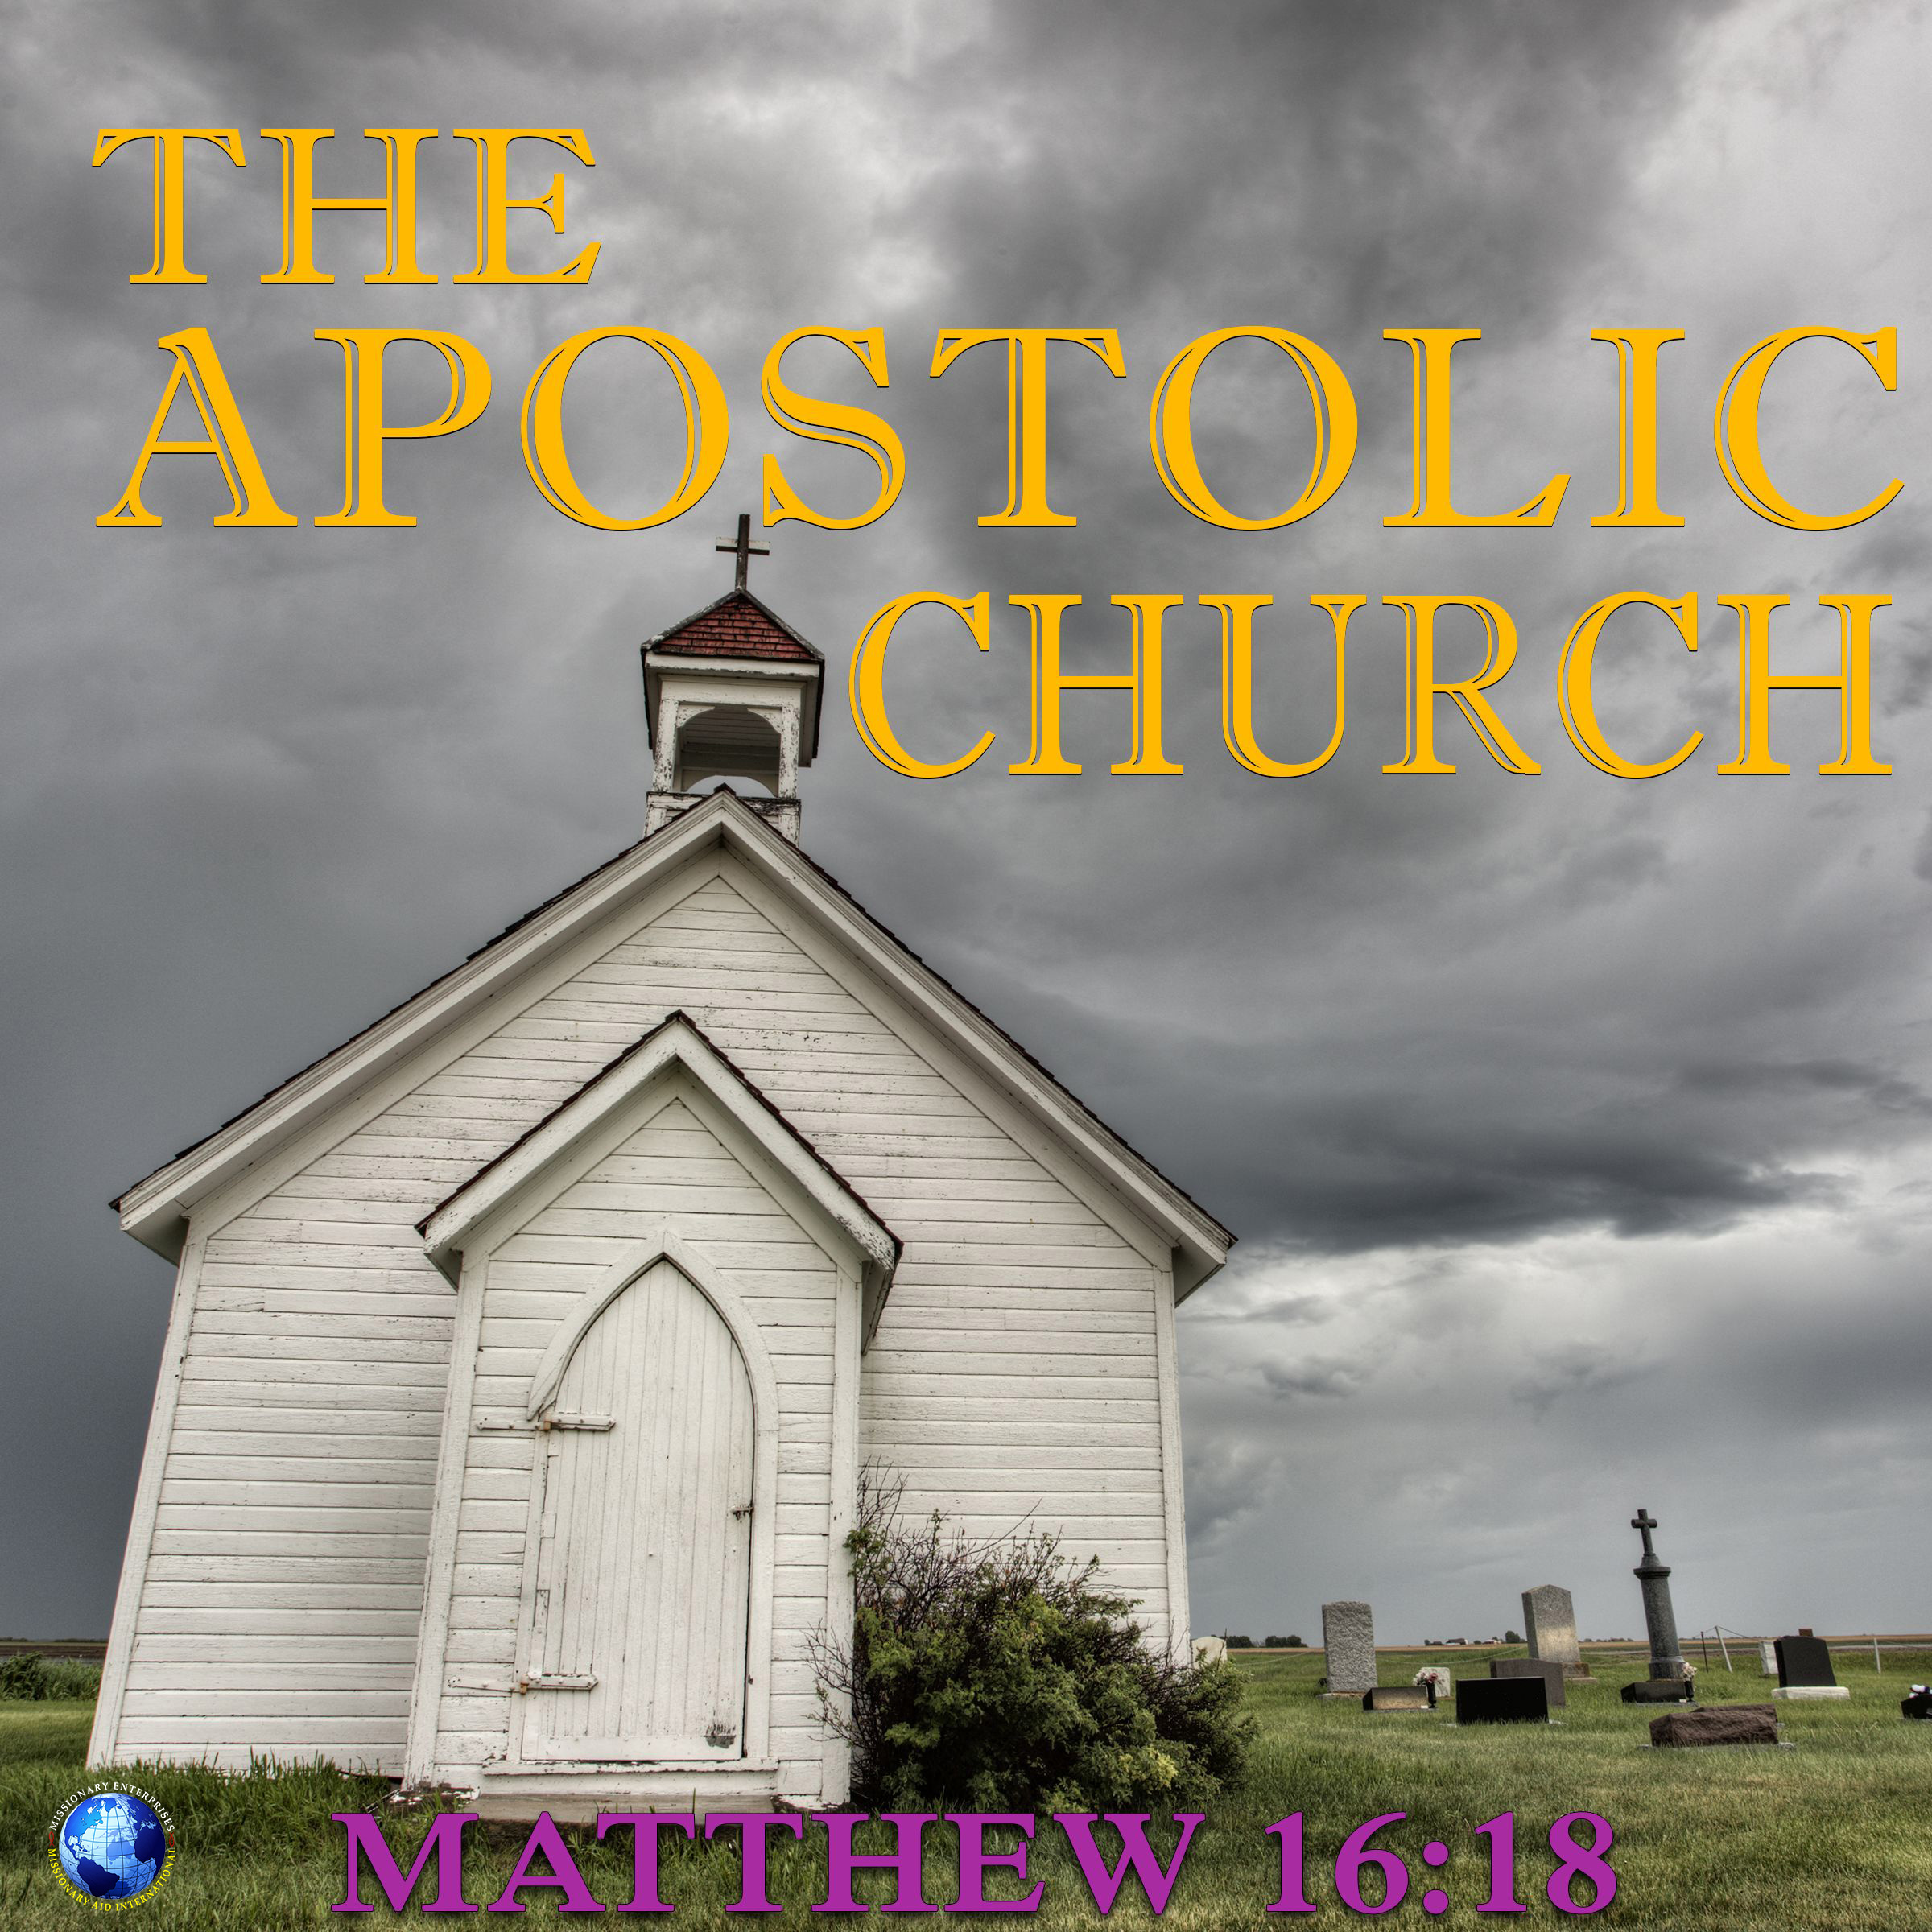 The Apostolic Church